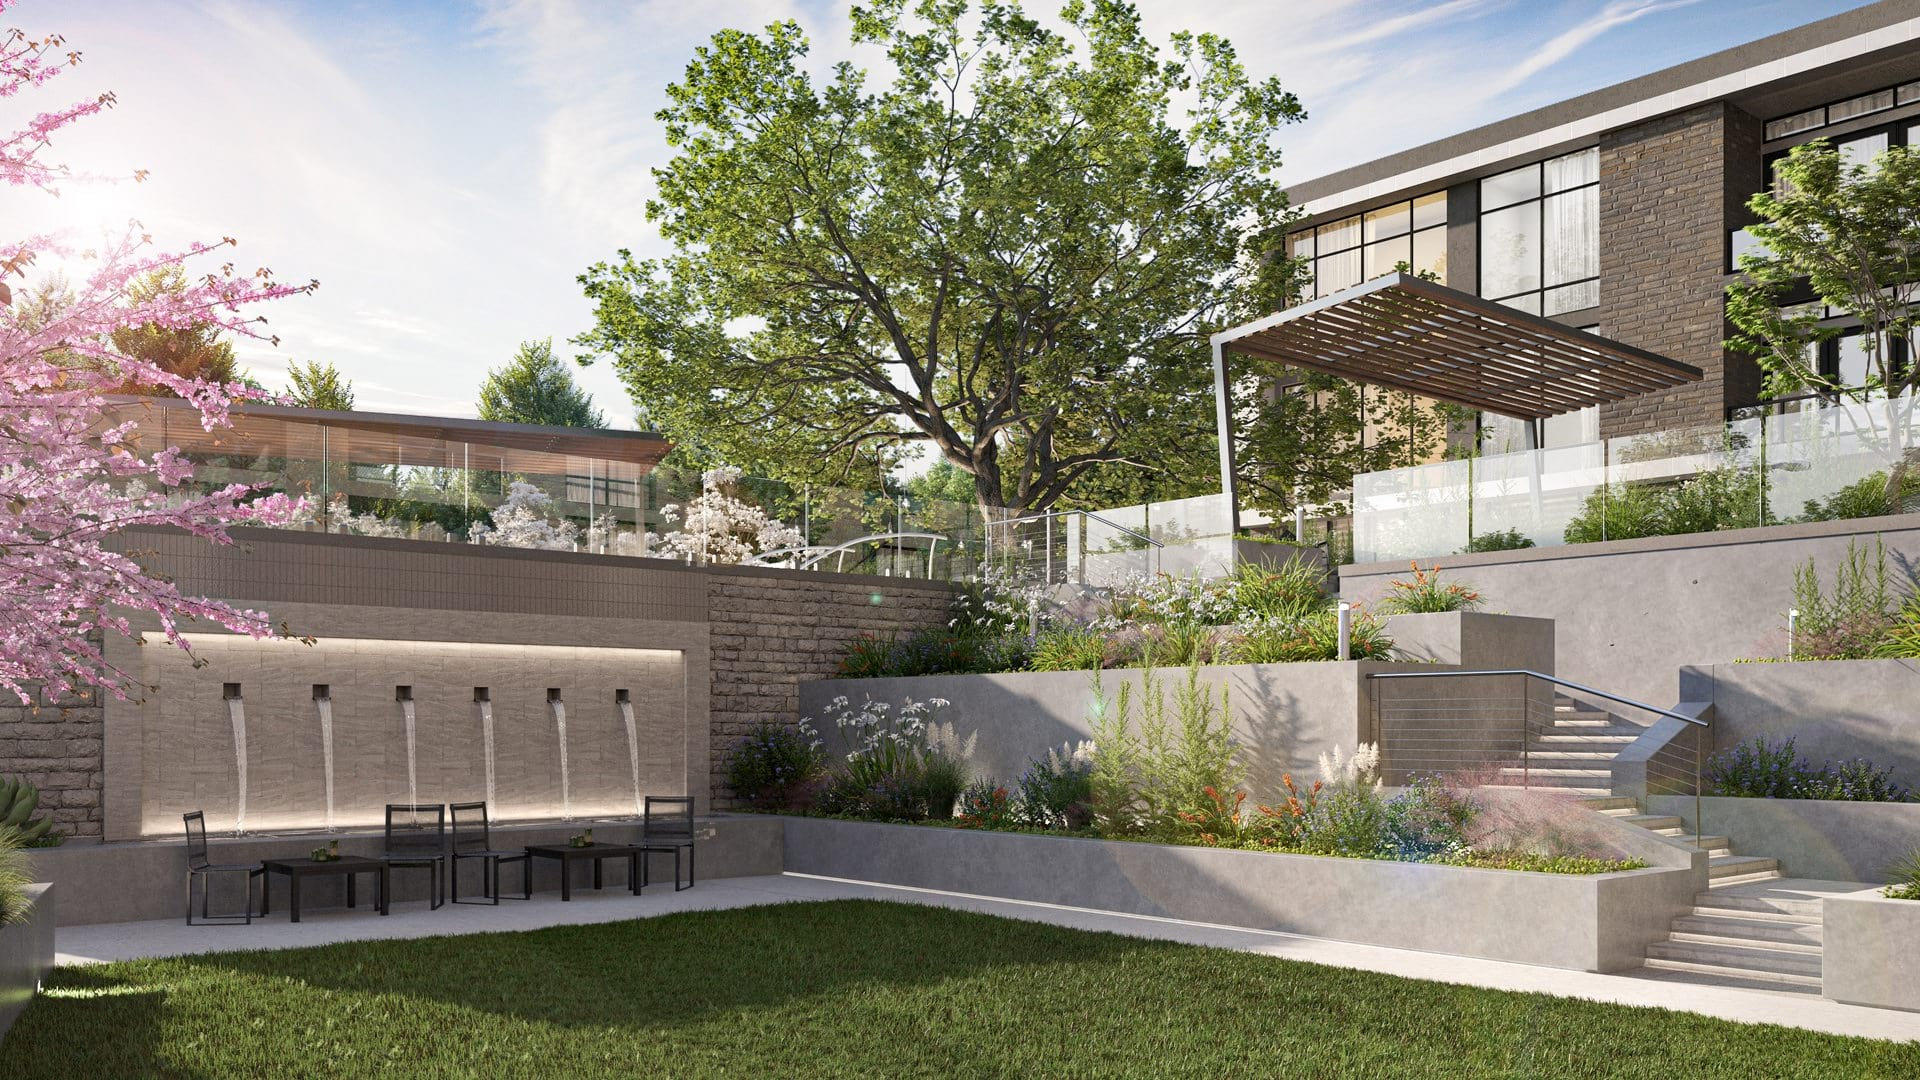 Activated Outdoor Spaces with Fountain and Lush Landscaping